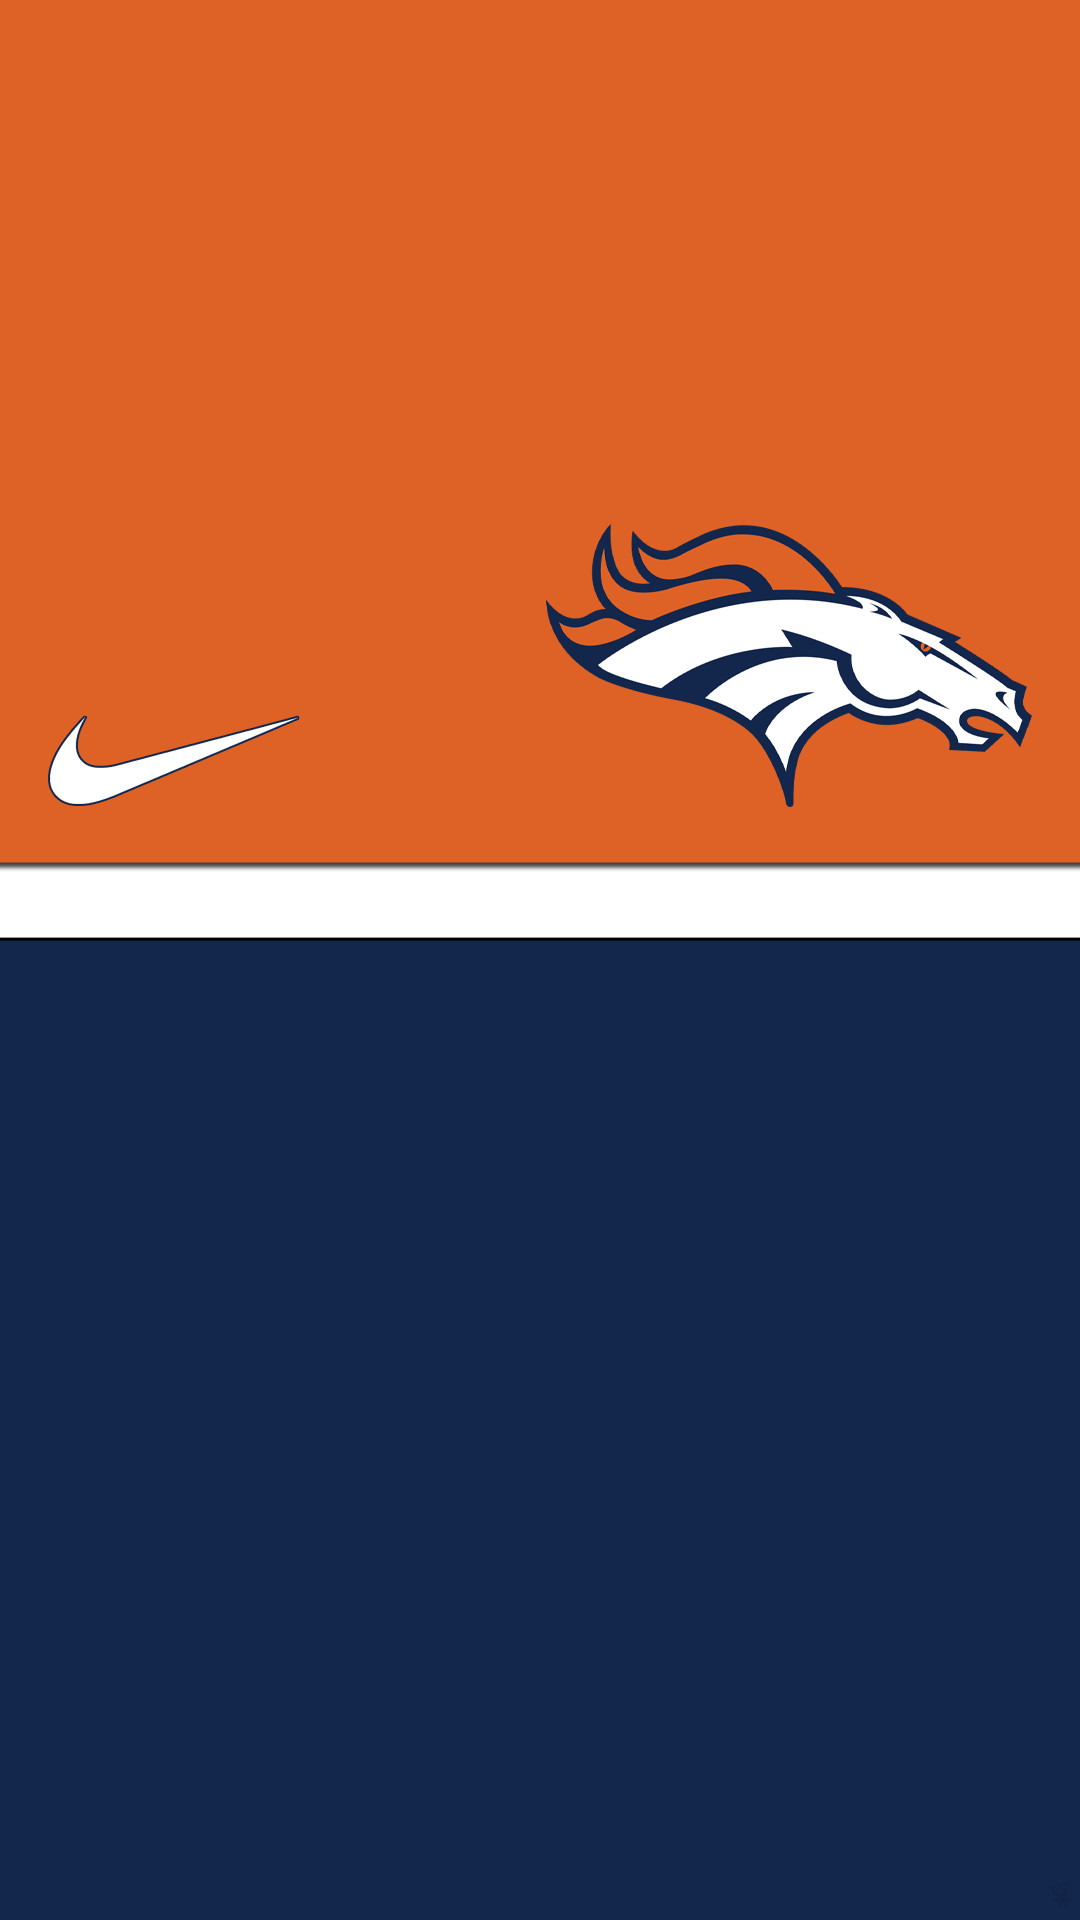 1080x1920 denver broncos nike image for iphone